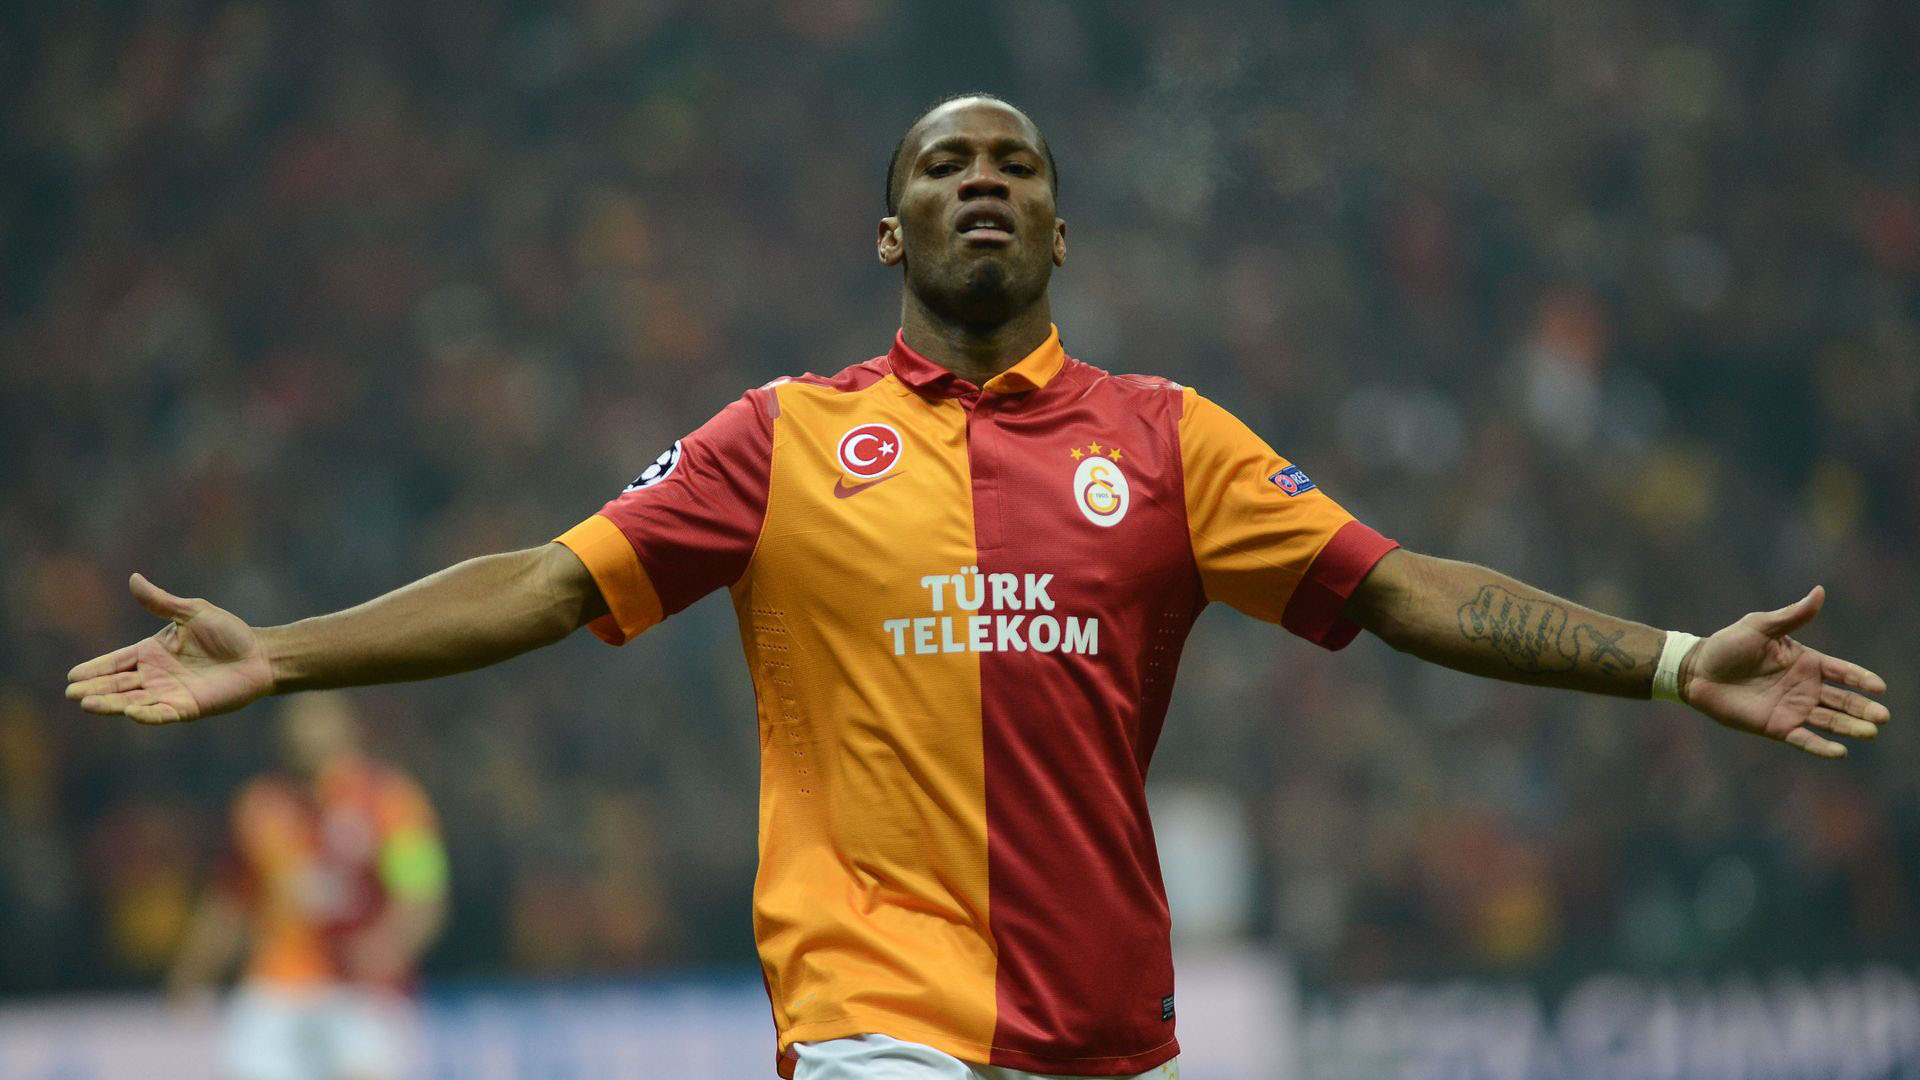 Didier Drogba Galatasaray wallpaper